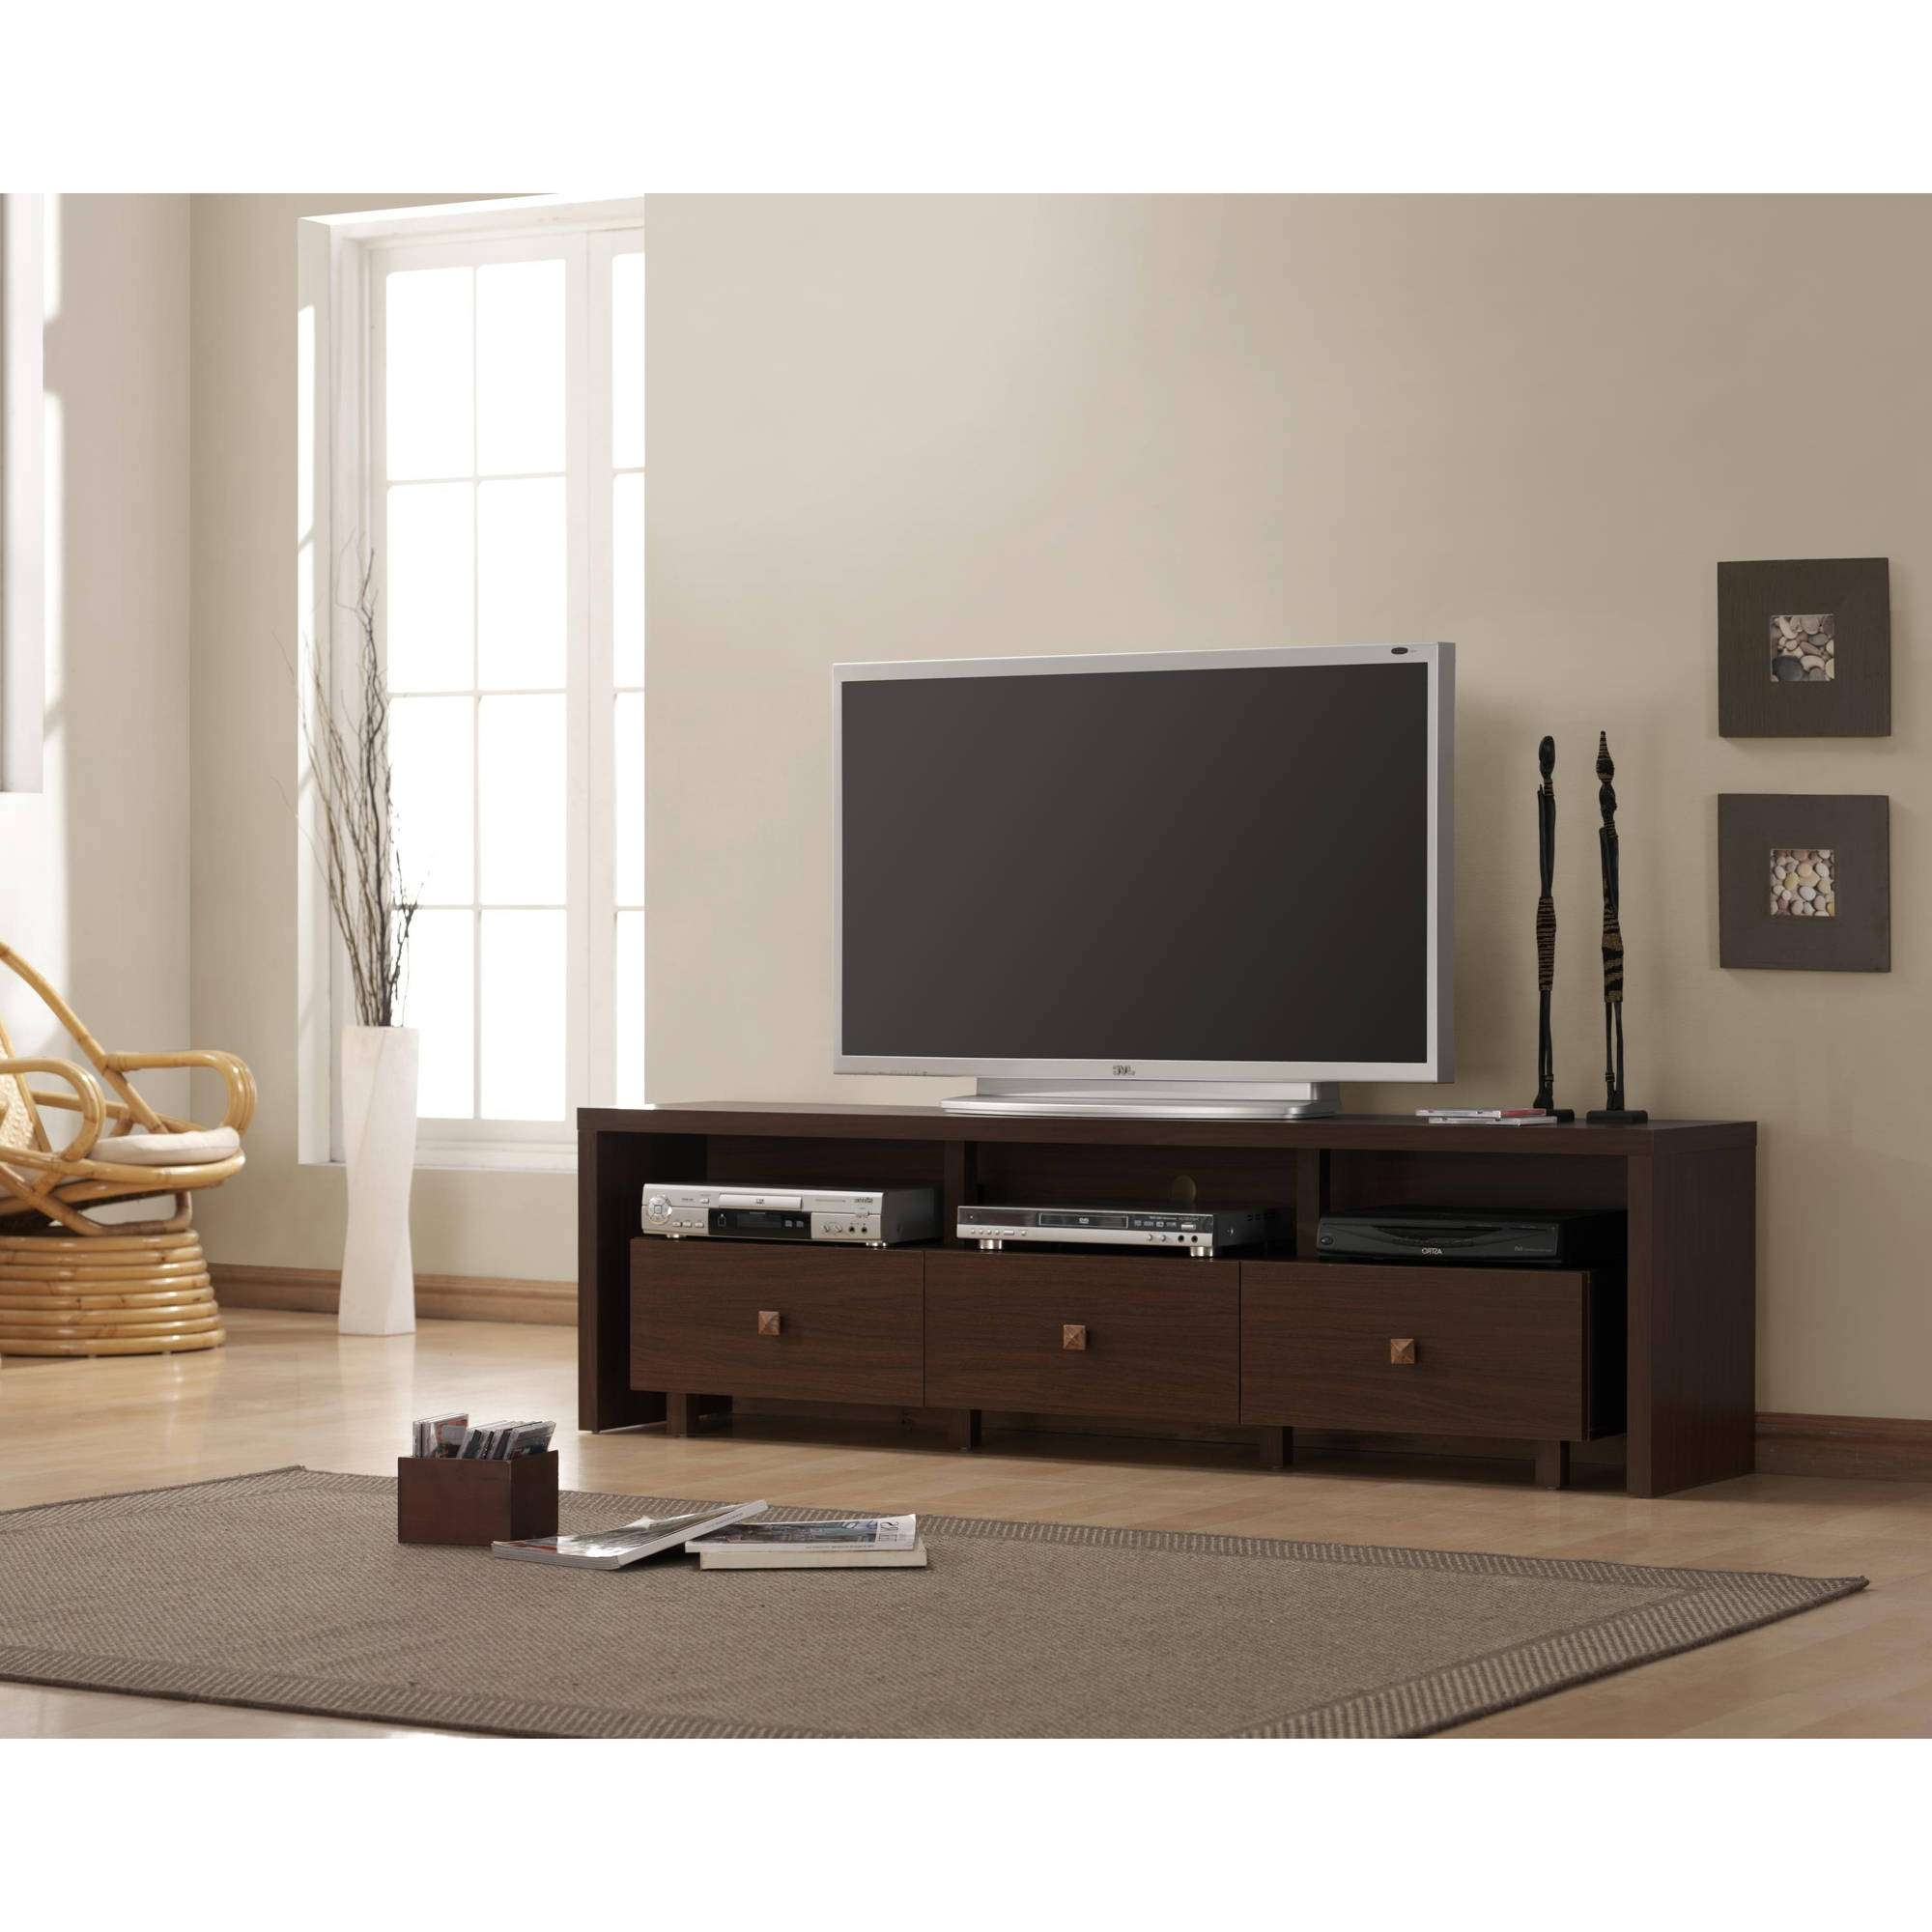 Dainty Tv Stand Entertainment Console Then Shelves Tv Stand Grey In Long Tv Stands Furniture (View 4 of 15)